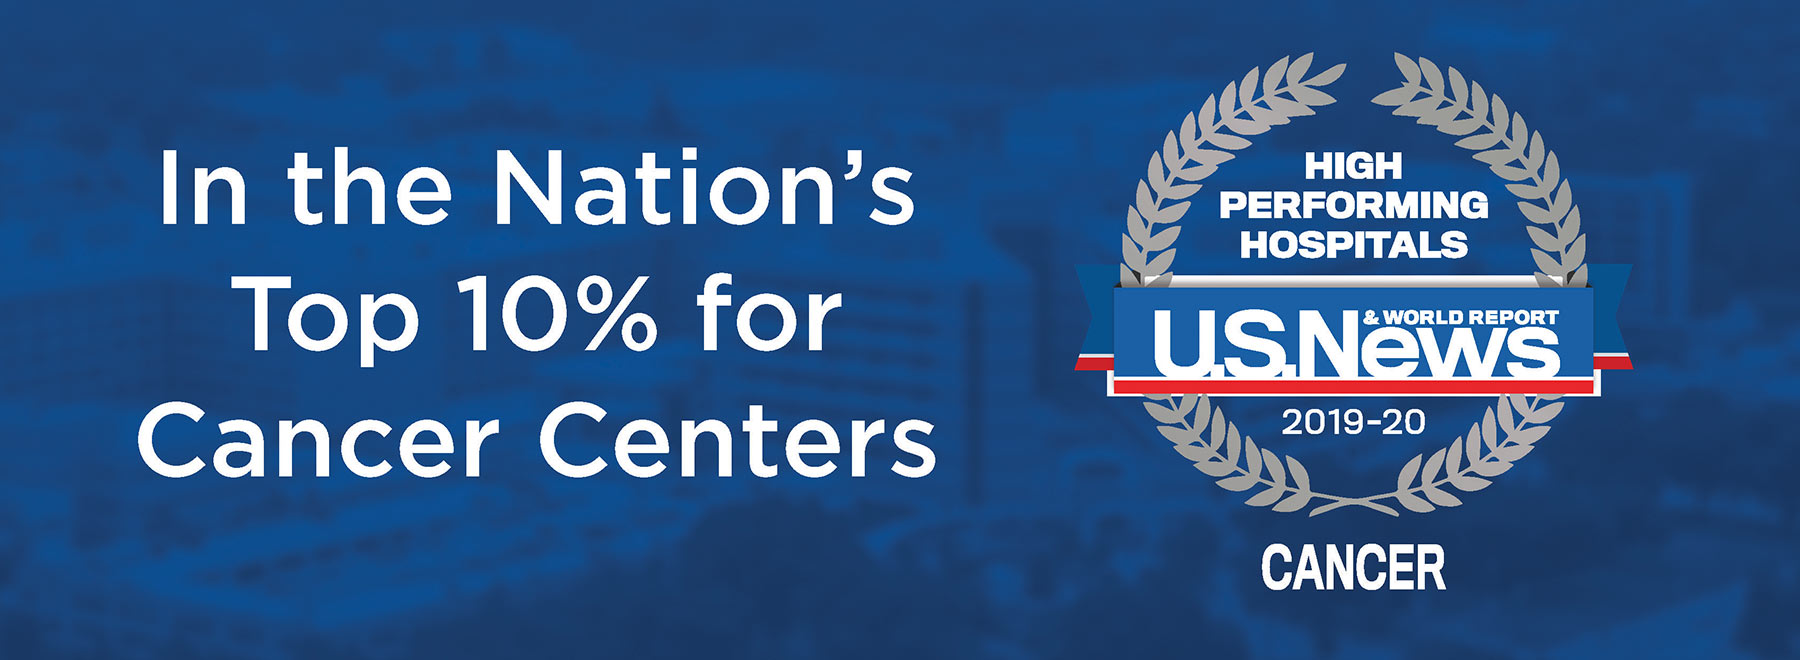 In the Nation's Top 10% for Cancer Centers. High performing hospitals U.S. News and World Report 2019-20 Cancer